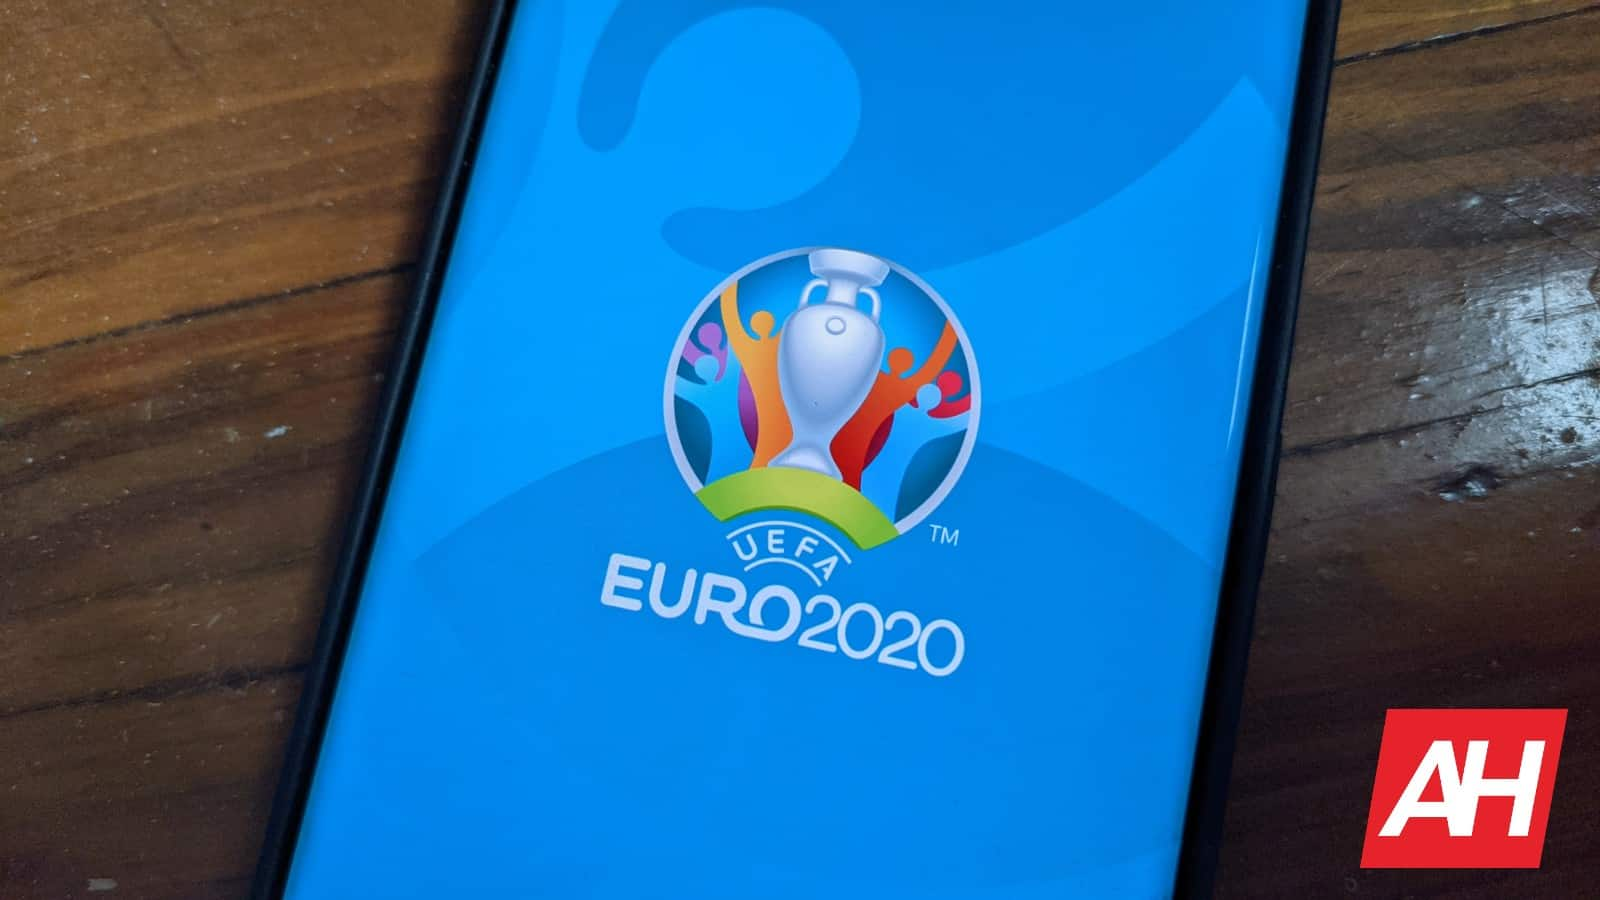 Top 9 Best UEFA EURO 2020 Android Apps & Games – 2021